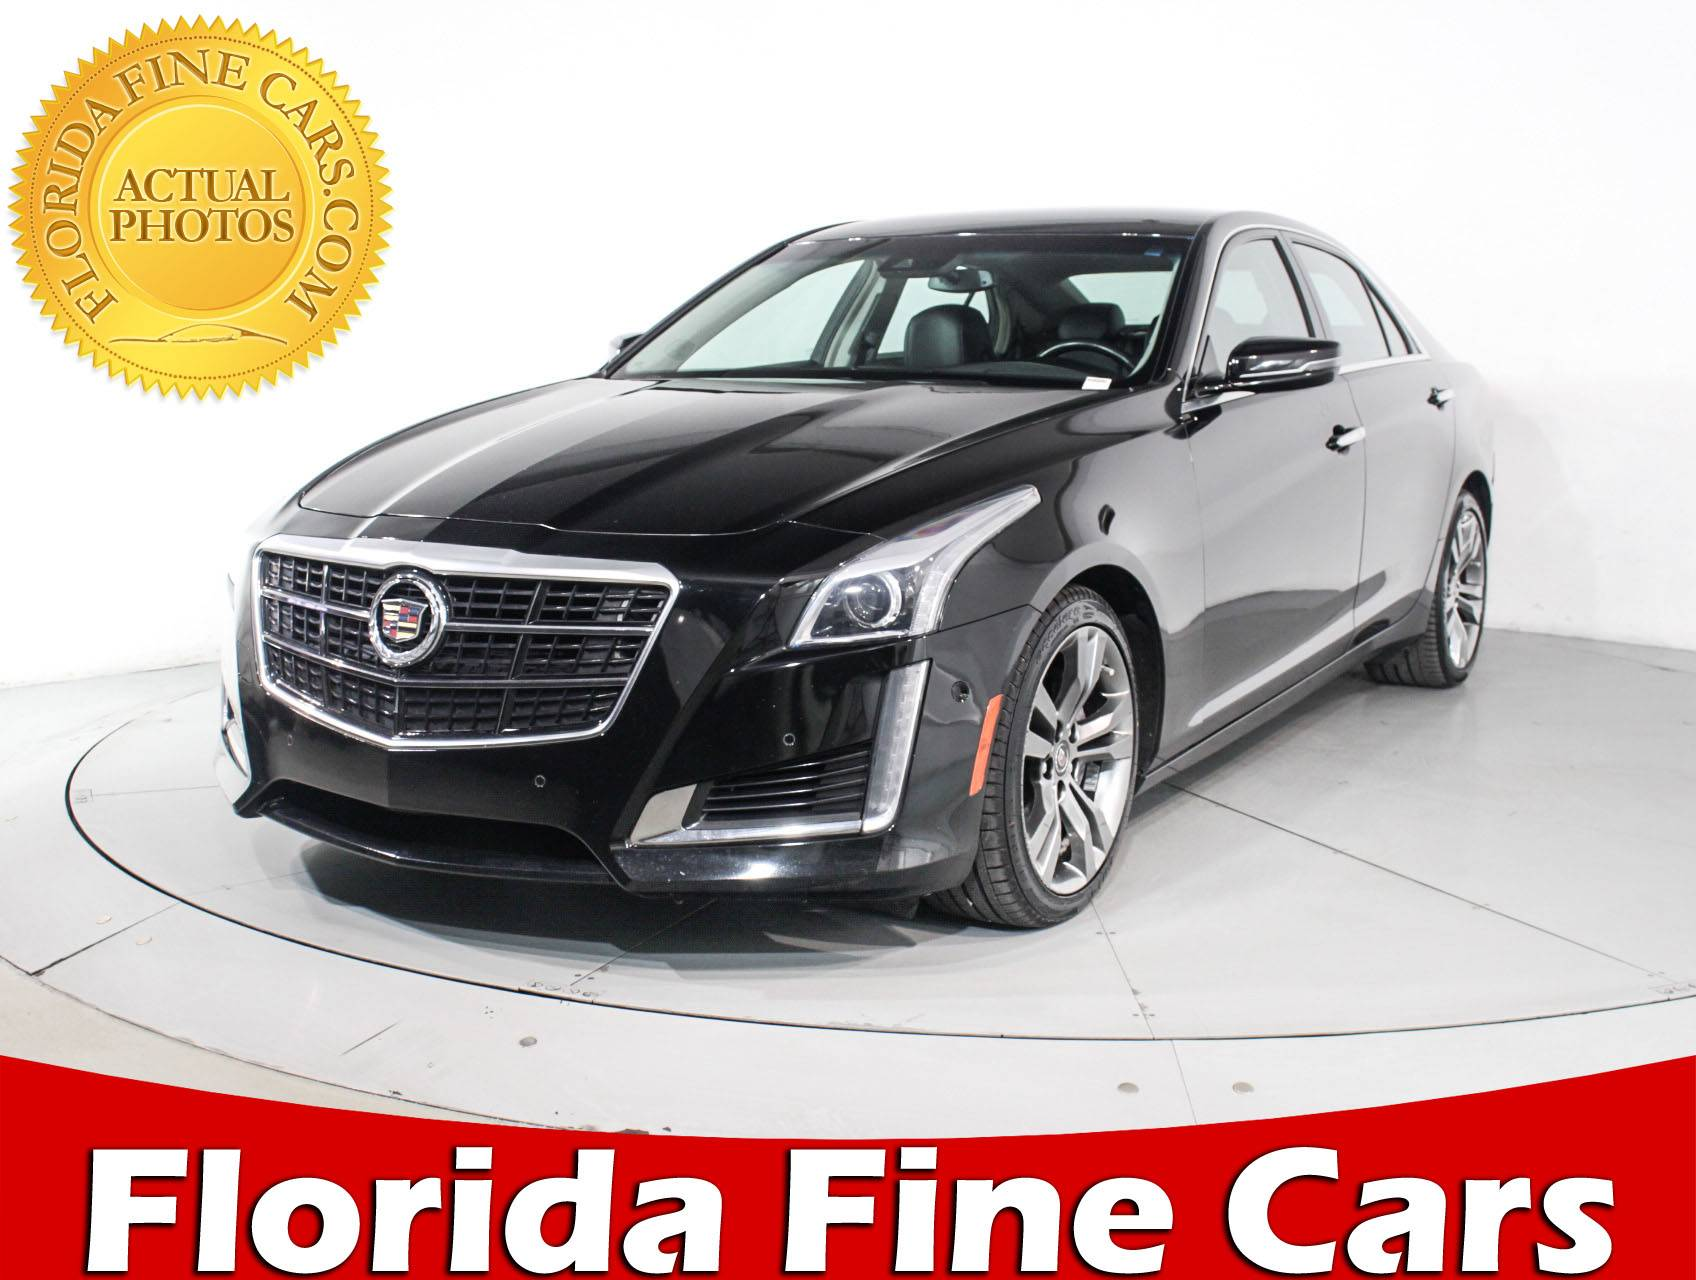 used 2014 cadillac cts vsport performance sedan for sale in margate fl 90180 florida fine cars. Black Bedroom Furniture Sets. Home Design Ideas